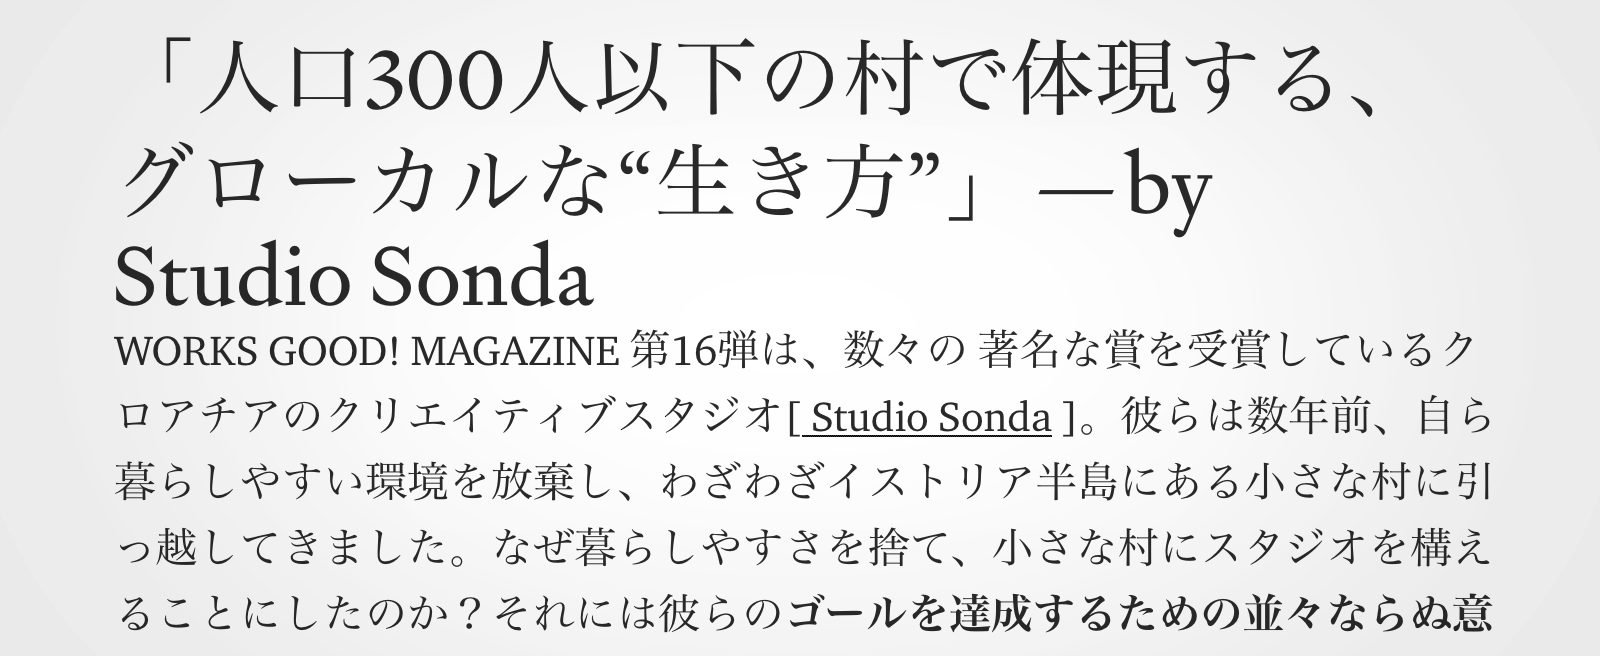 Japanese portal Works good! writes about Studio Sonda